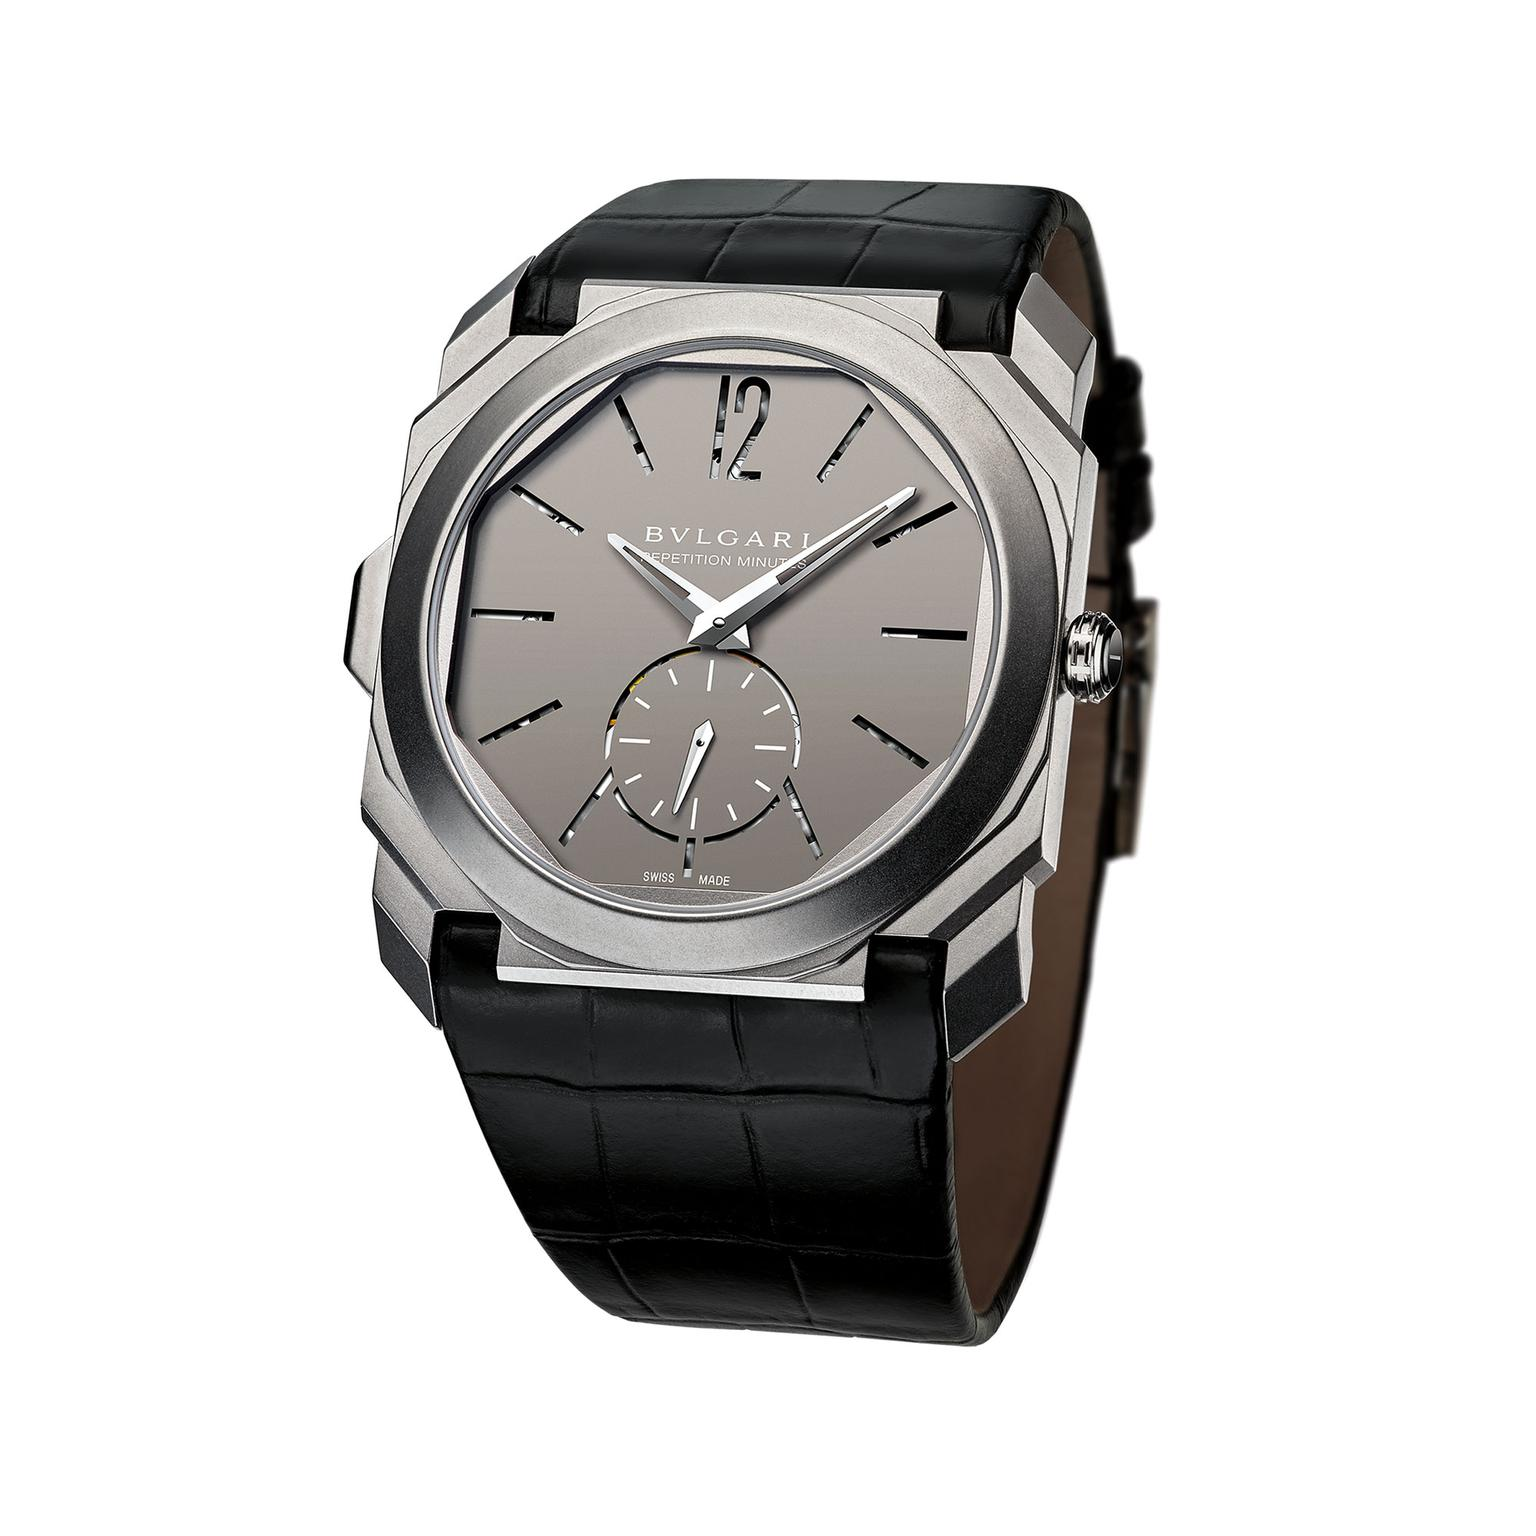 Bulgari Octo Finissimo Minute Repeater watch